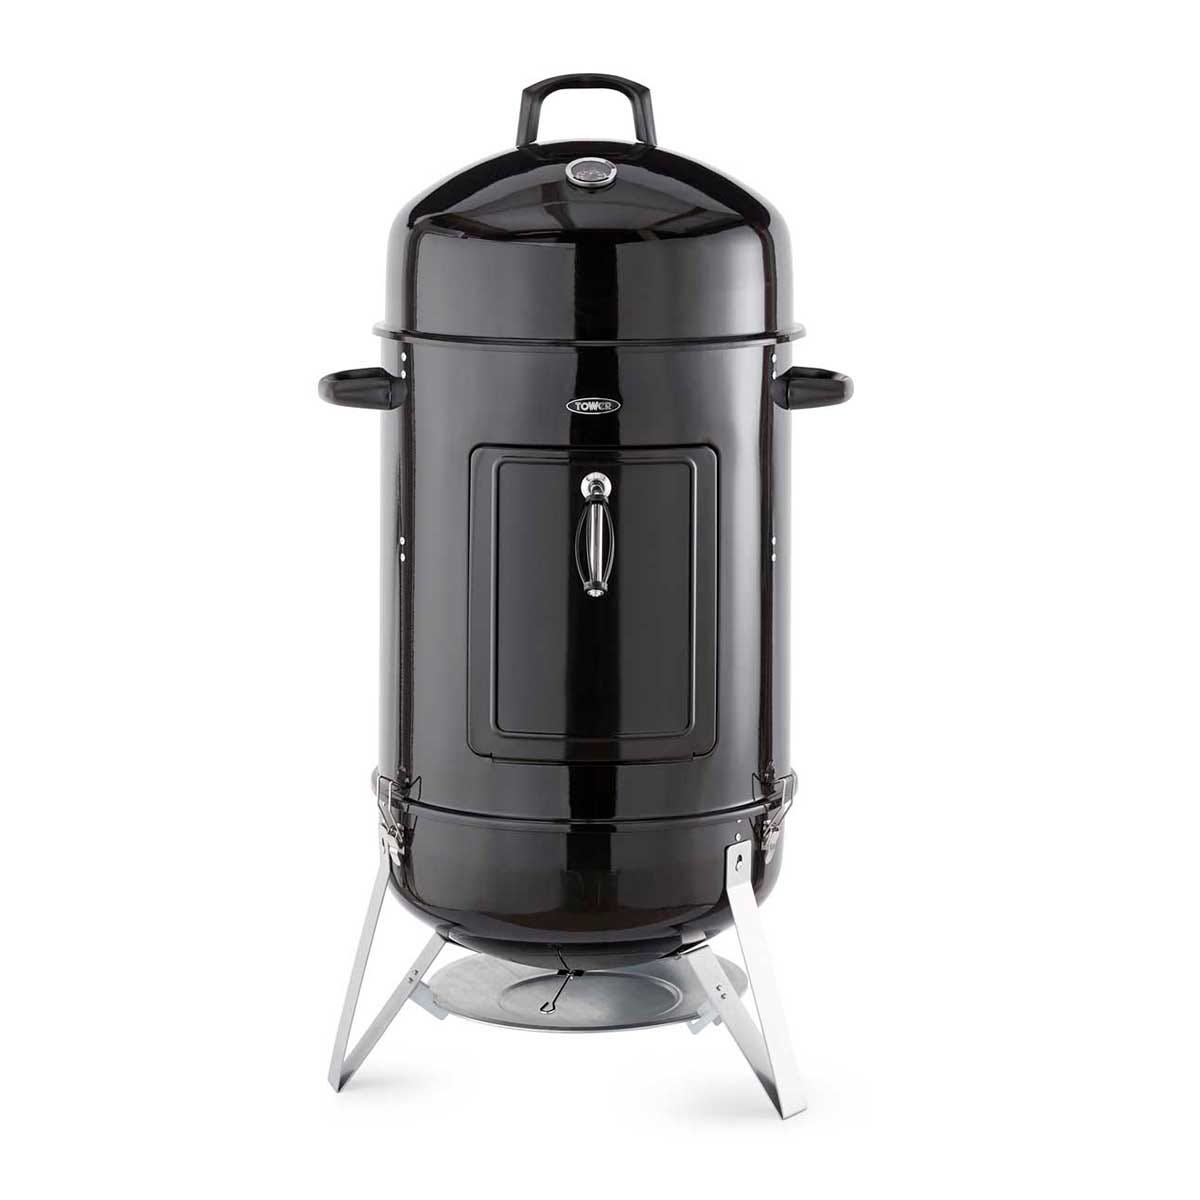 Tower 2-in-1 BBQ Smoker Grill - Black